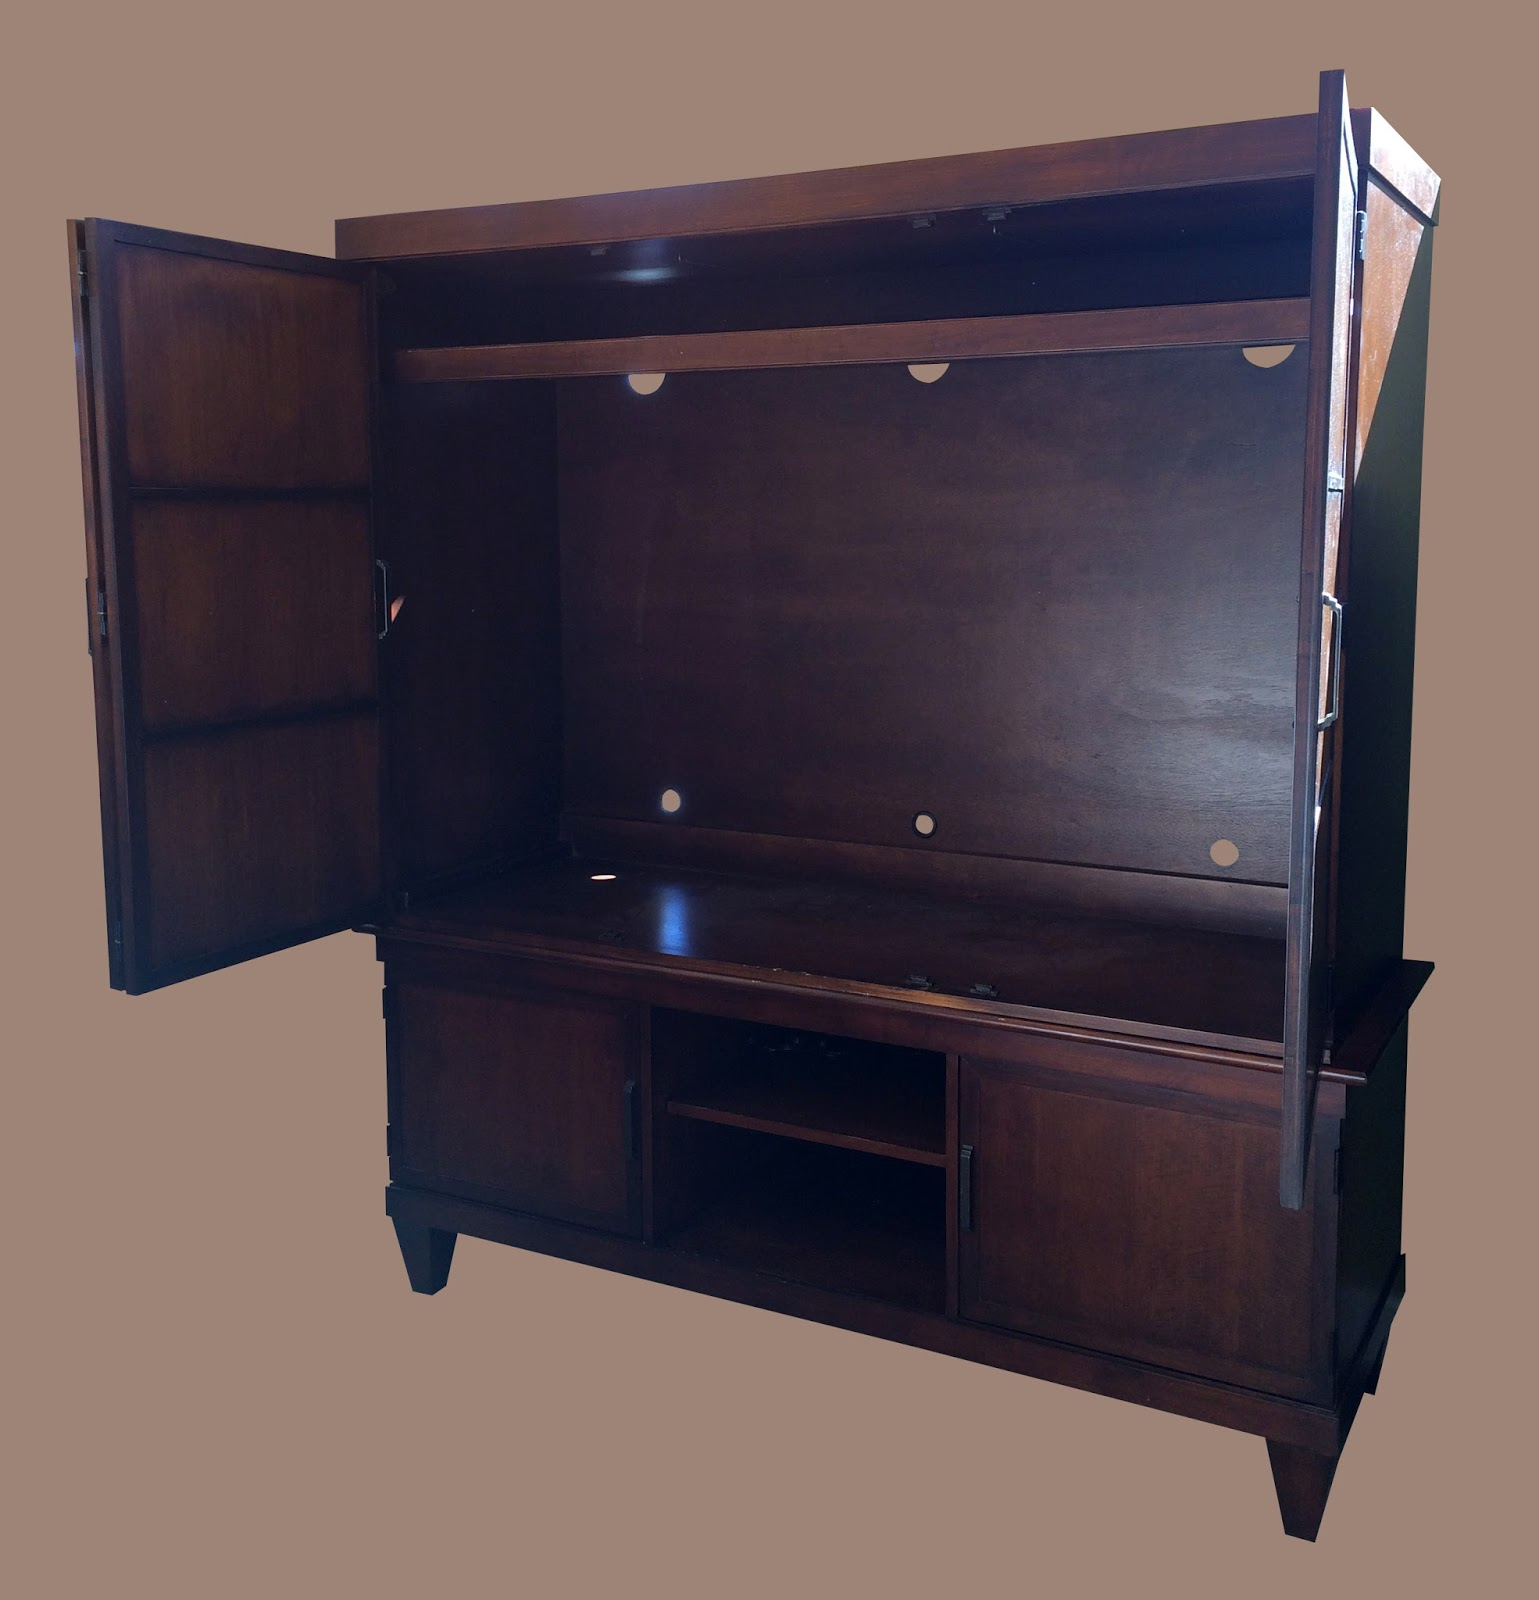 Uhuru Furniture & Collectibles: Large 2 Piece Flat Screen ...